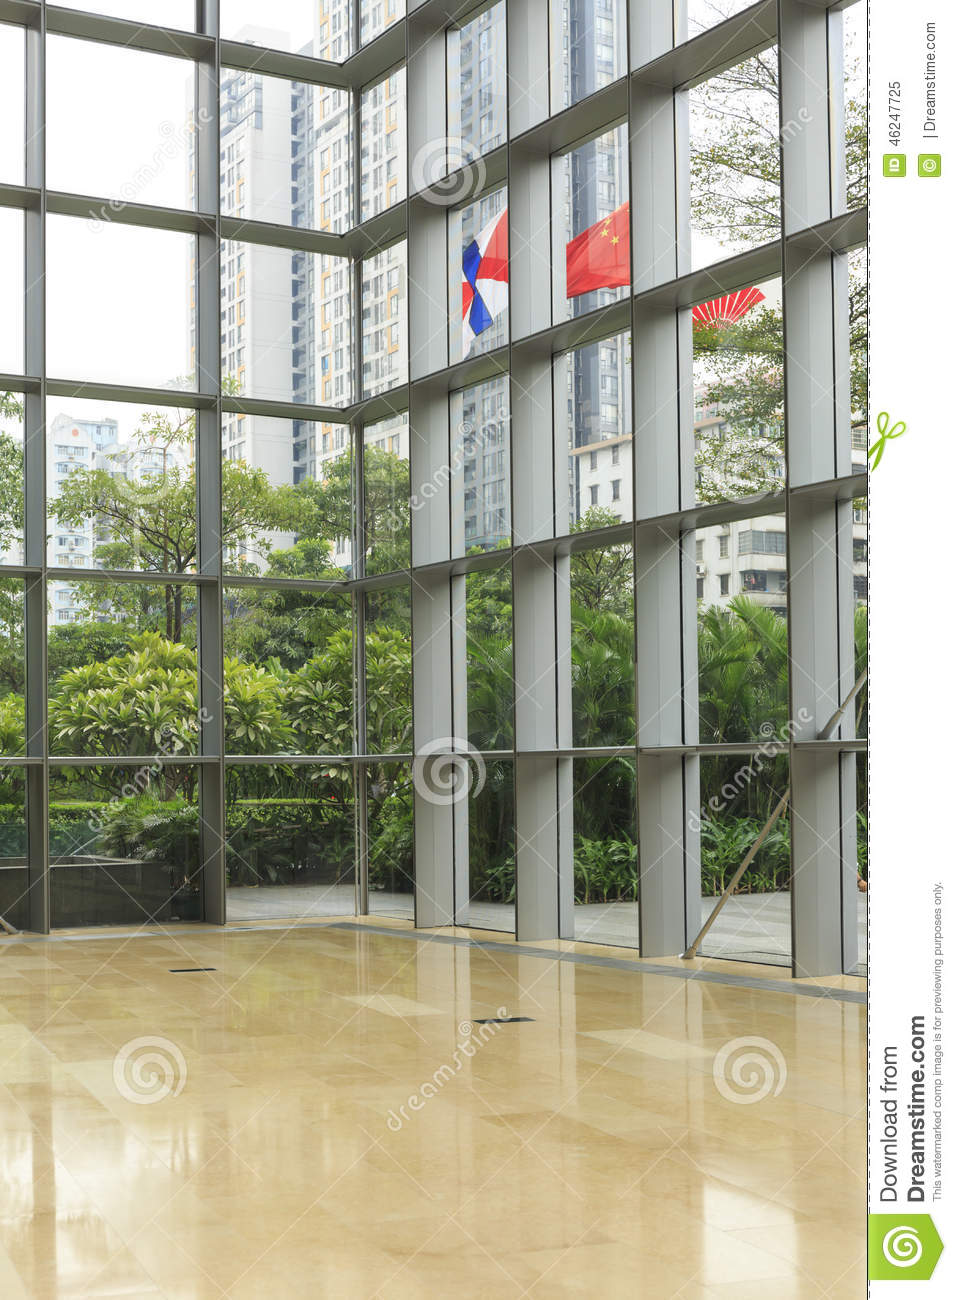 Building Glass Window : Modern glass office building wall editorial image